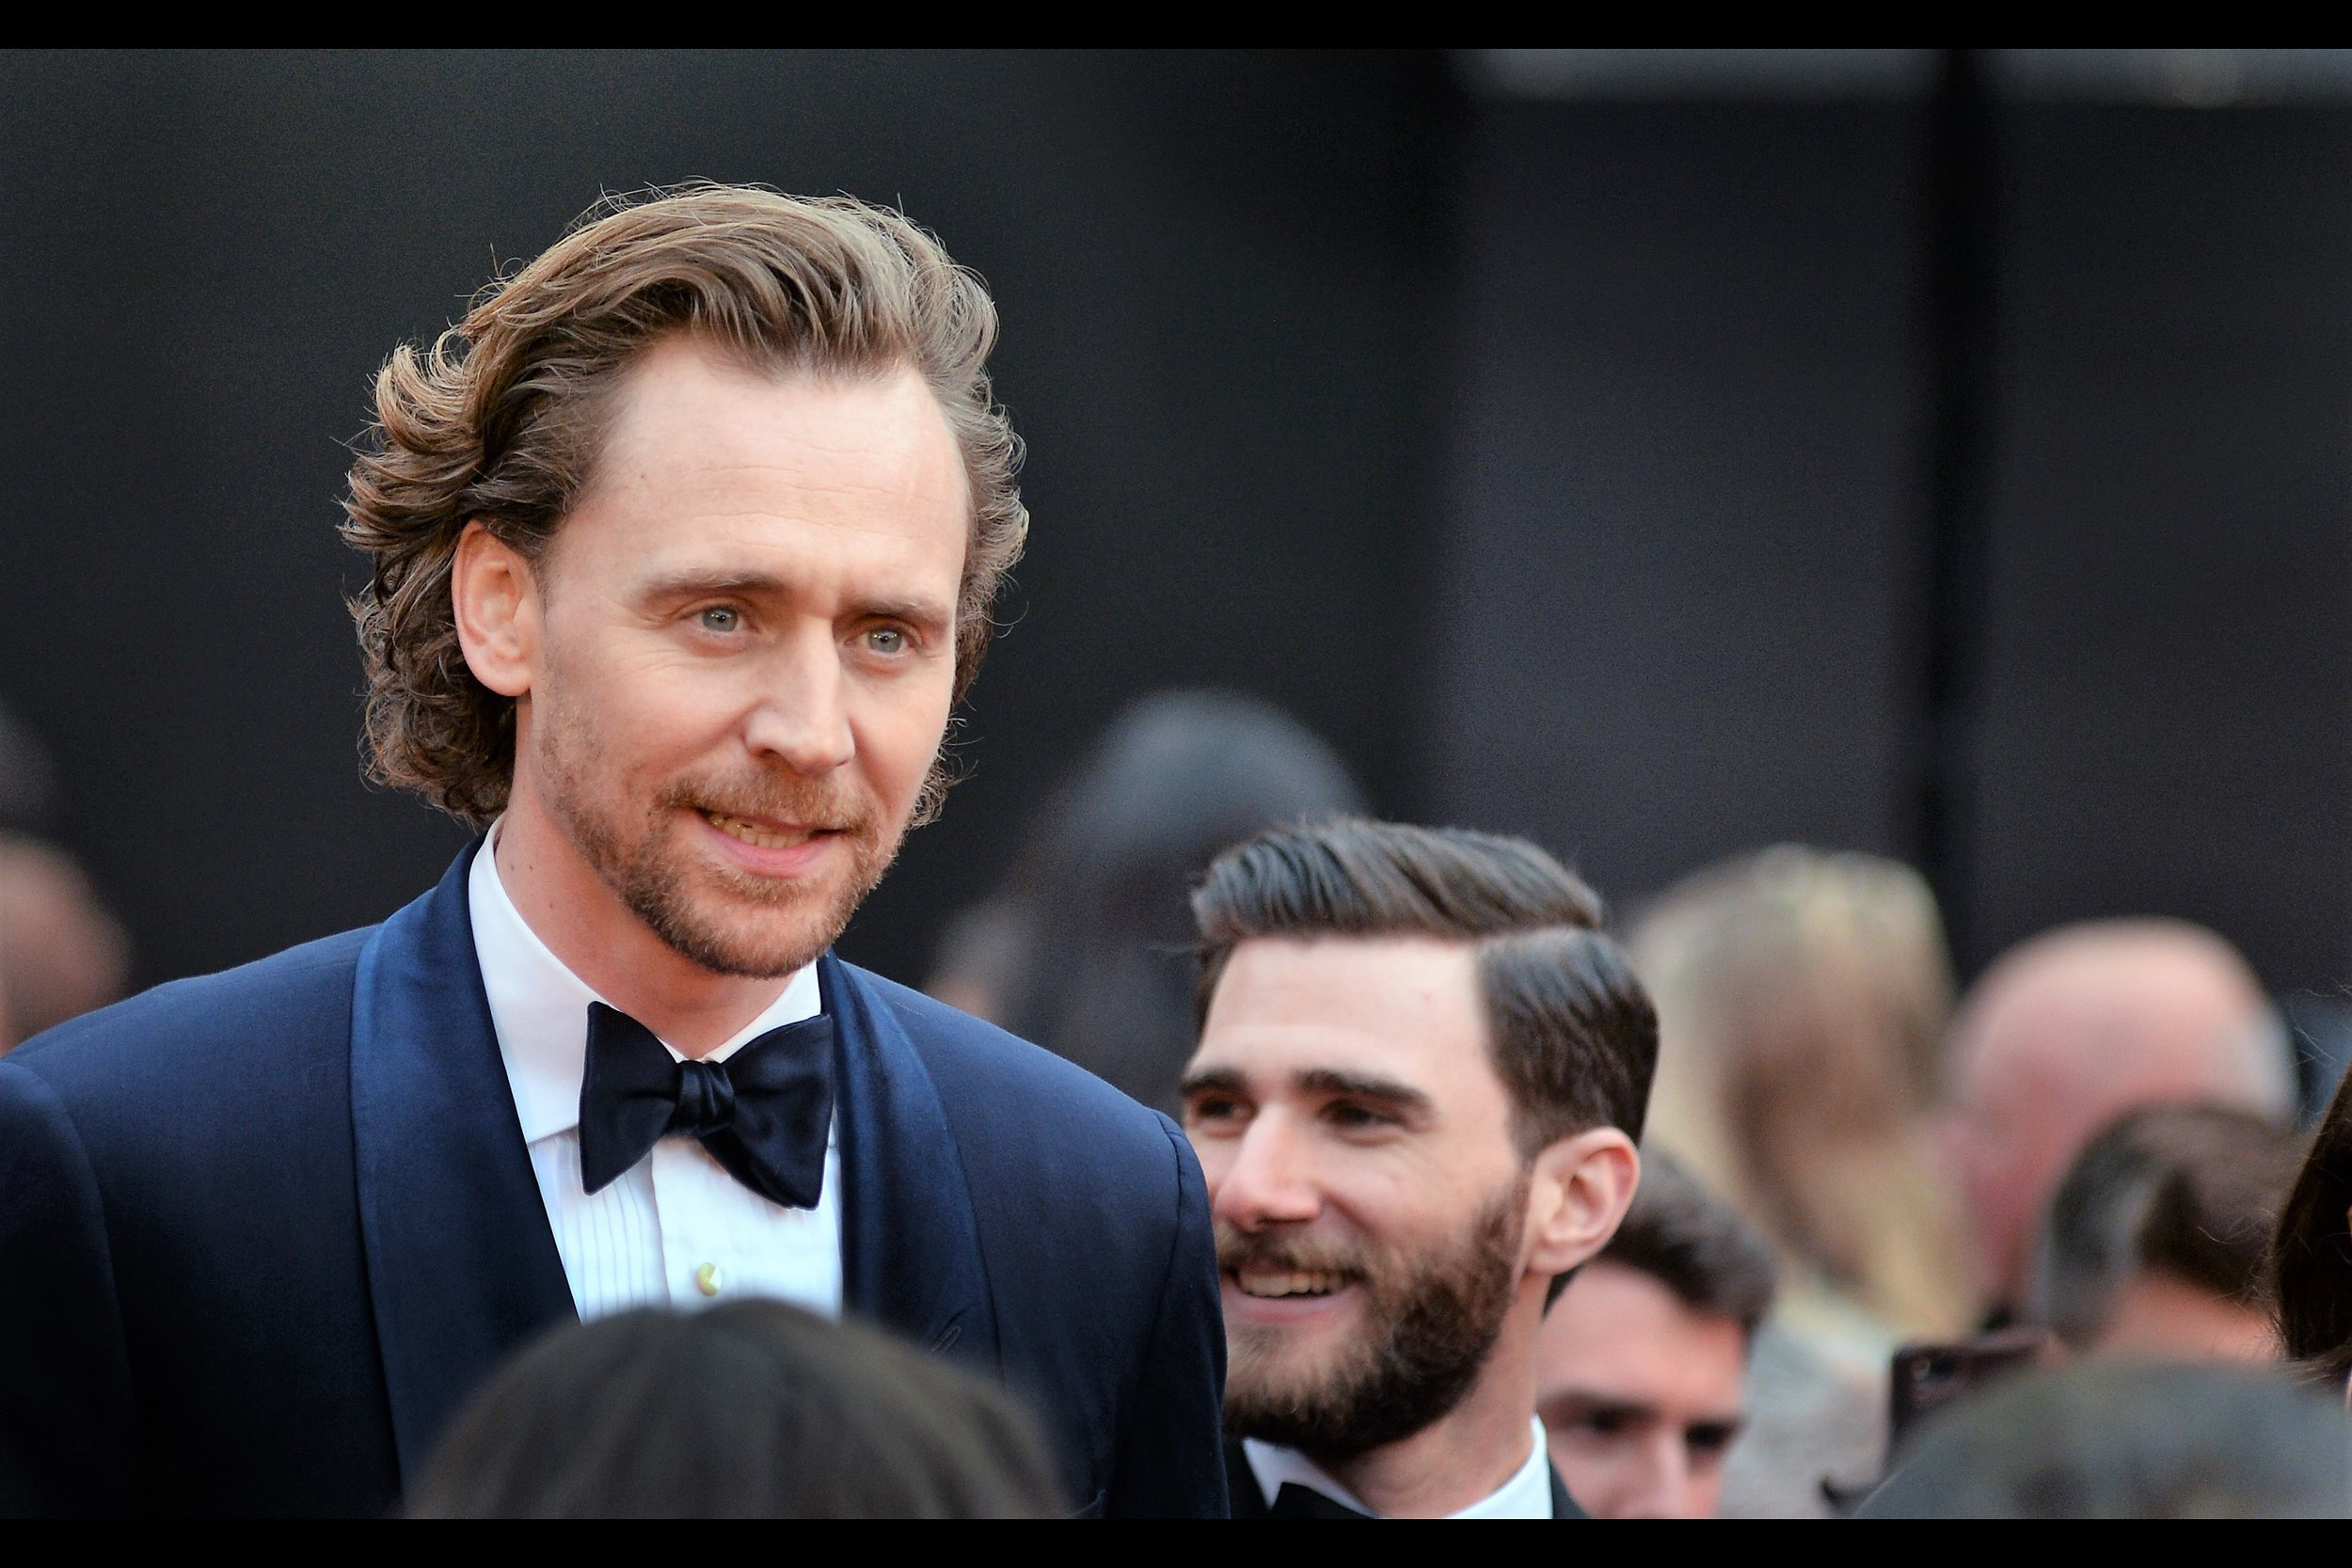 Tom Hiddleston used to have the power to ensure any journal I posted featuring his presence would get 5-10x more views than if they simply contained generically good looking people or Oscar winners. I'm not sure he still has that power, but the hairstyle's great, the focus is commendable, and in the absence of all else : he remains tall and thus easier to photograph than people shorter than he is.